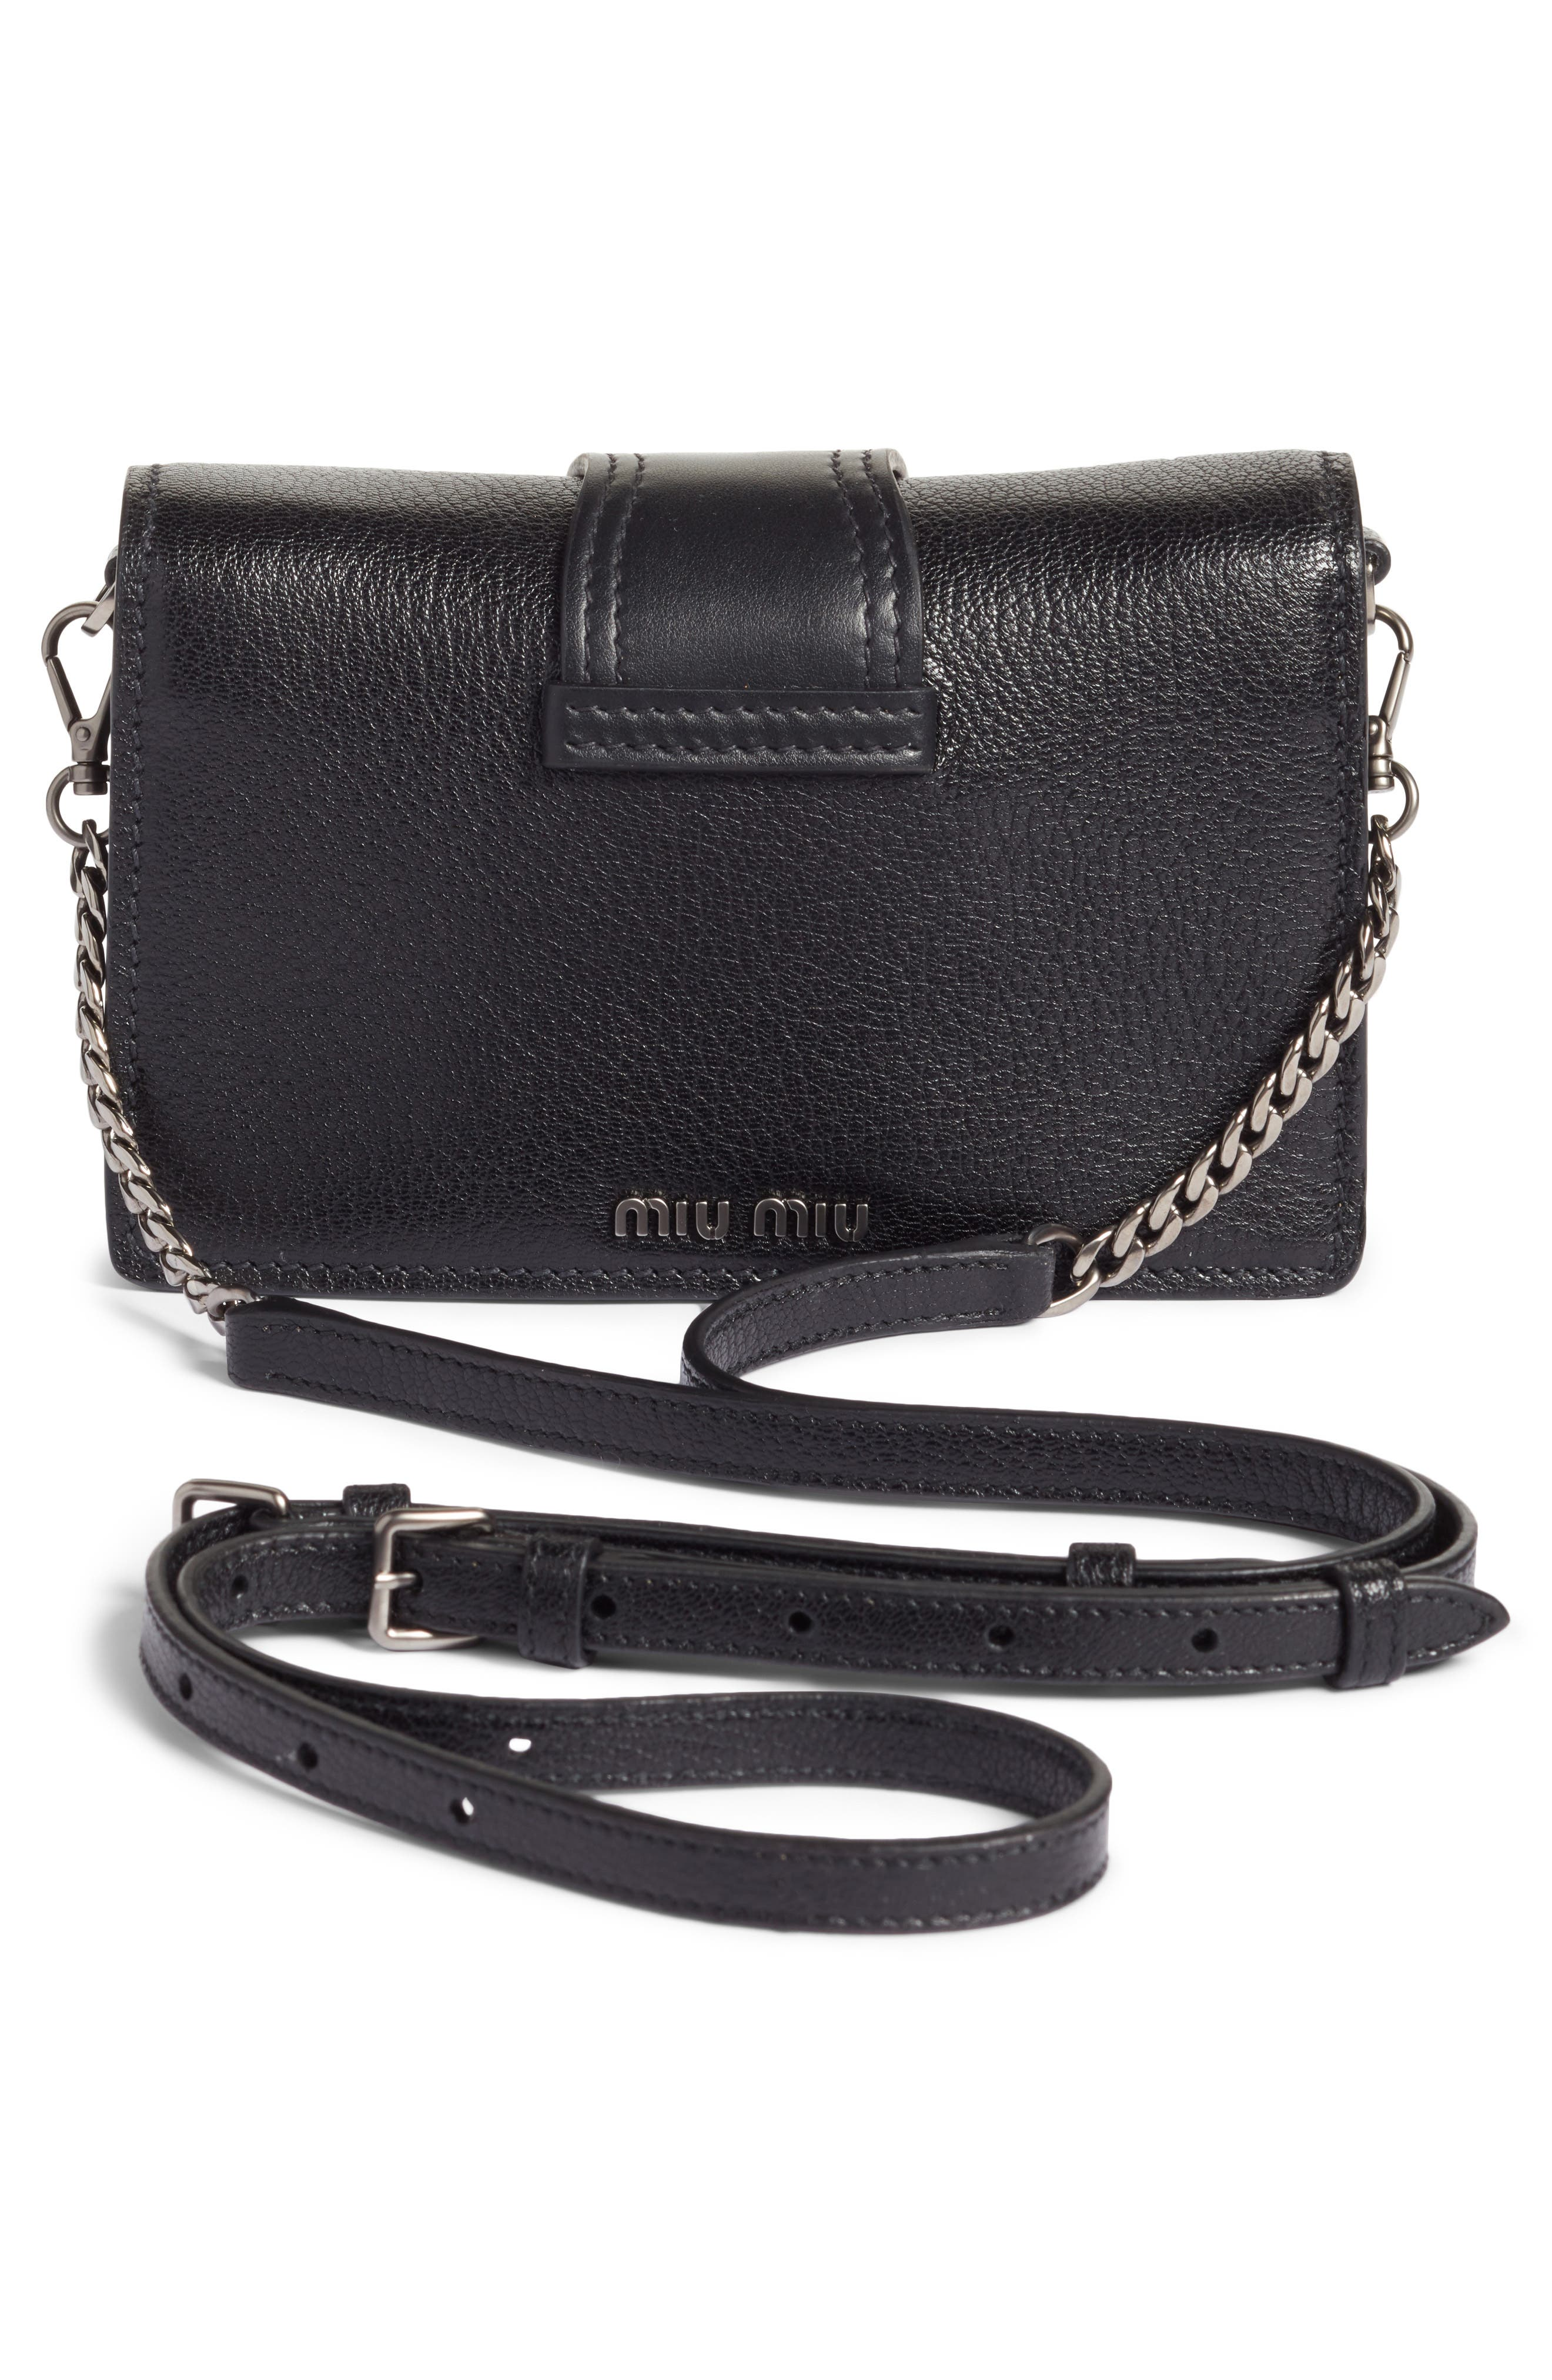 Lady Madras Crystal Embellished Leather Crossbody Bag,                             Alternate thumbnail 3, color,                             001